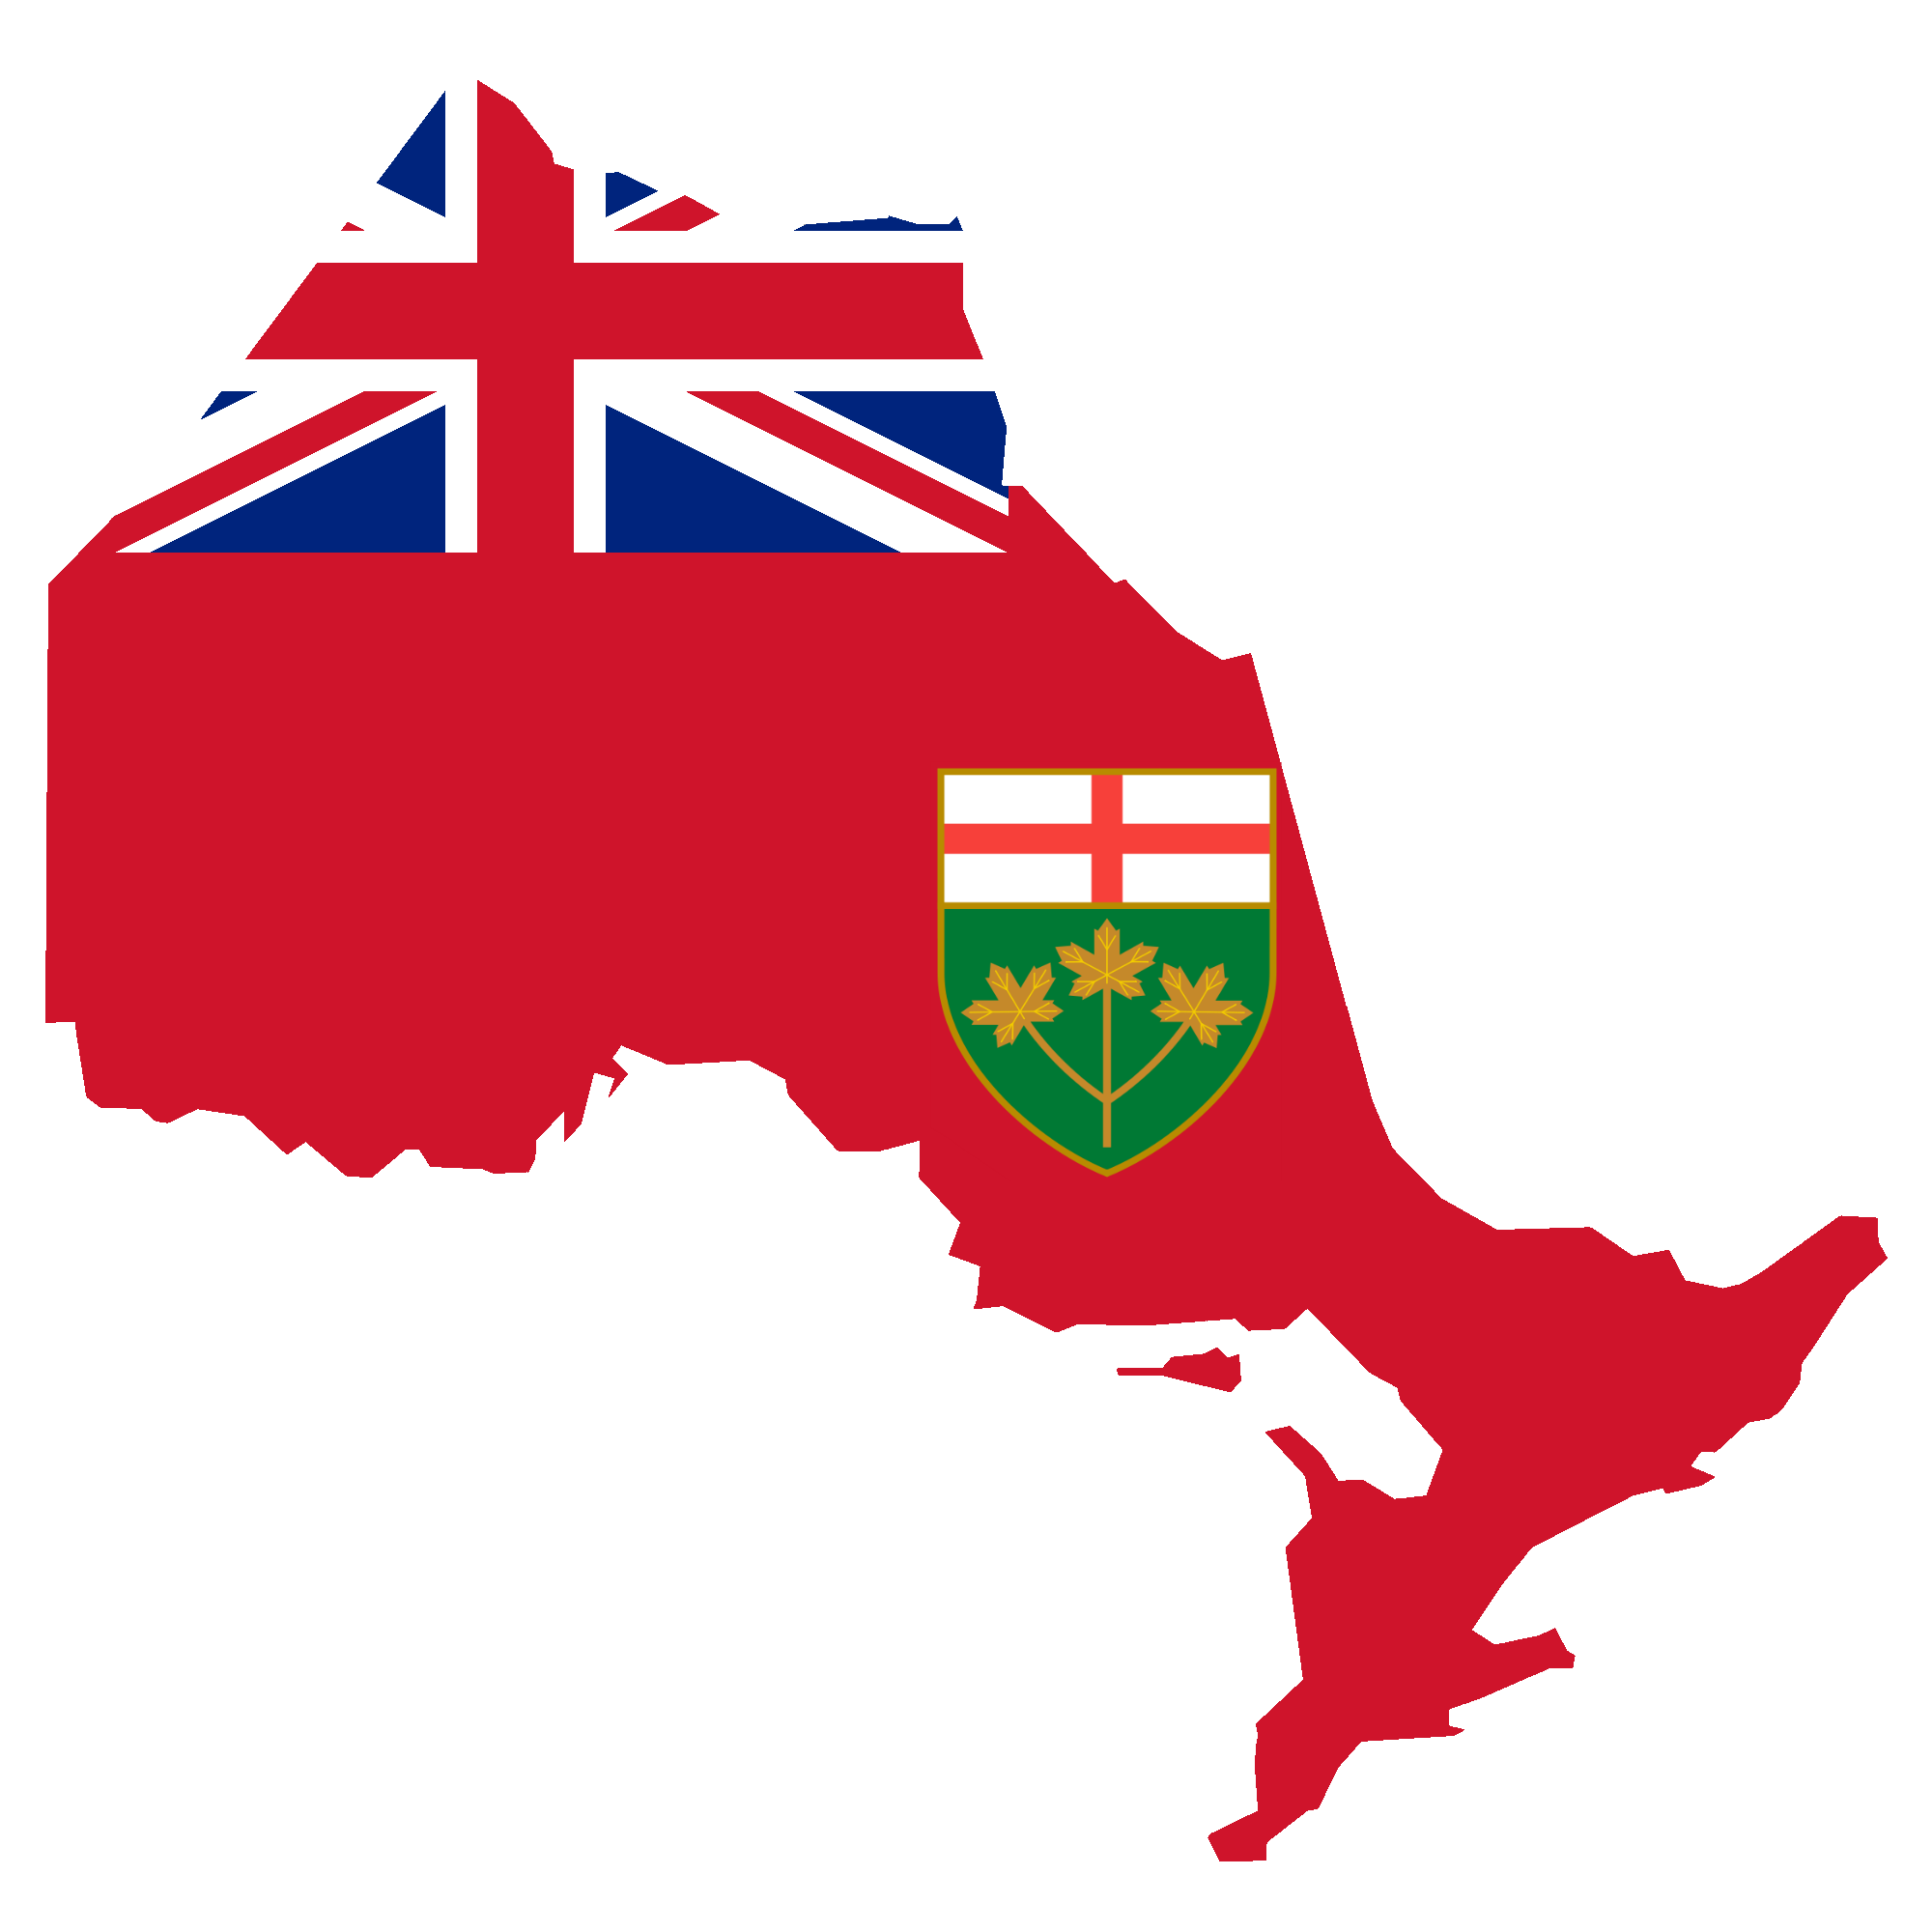 Flag_Map_of_Ontario.png